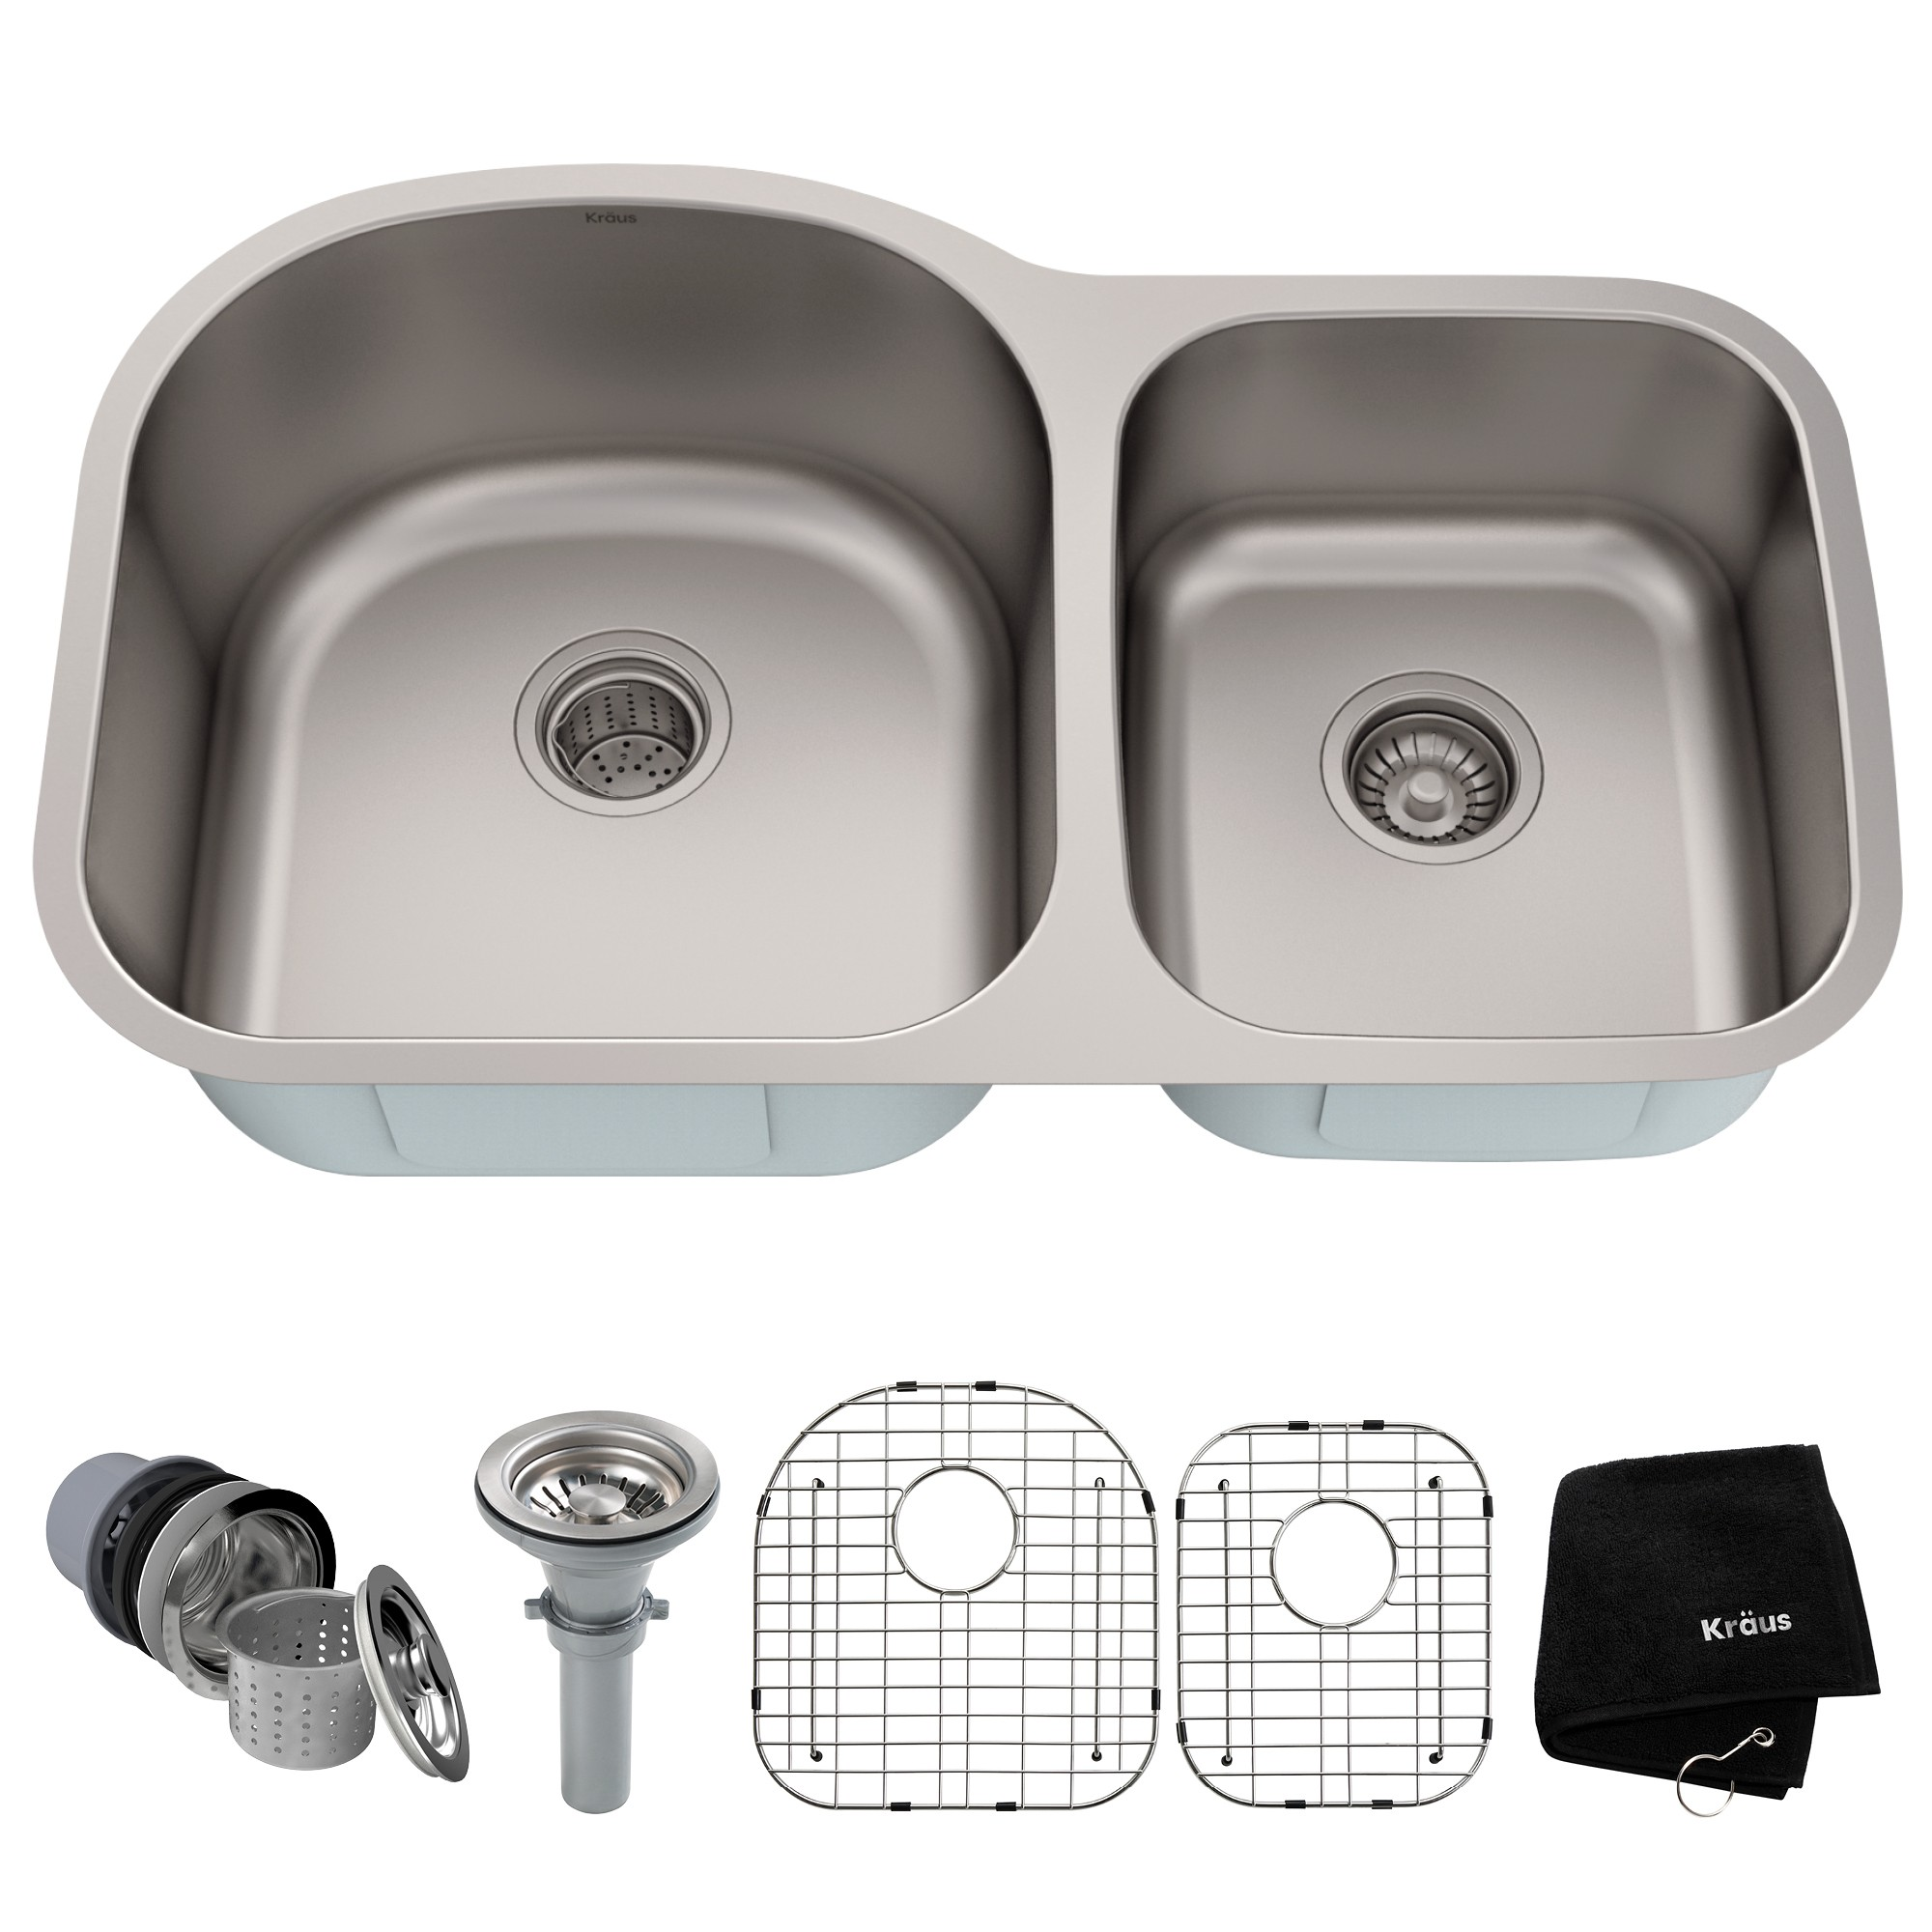 Kraus Kbu27 35 Inch Undermount 60 40 Double Bowl 16 Gauge Stainless Steel Kitchen Sink Set